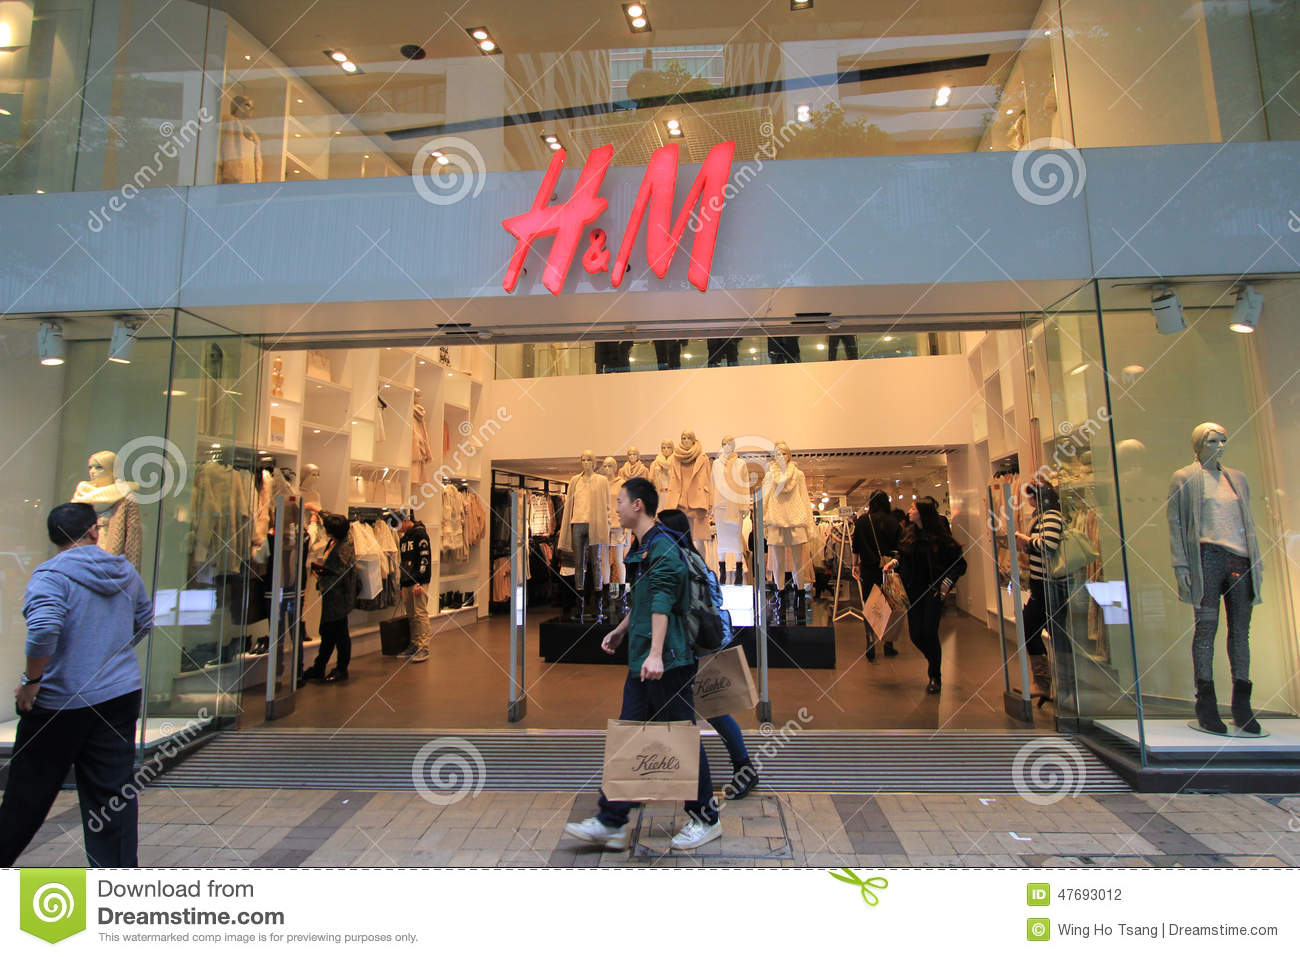 USA H & M store locators: If you'd like to look up the location of H & M stores in other states of the USA, use the upcoming link to head straight to the H & M store locator page for the USA. Canadians will want to use the next link, which will take them directly to the Canadian H & M store locator page.